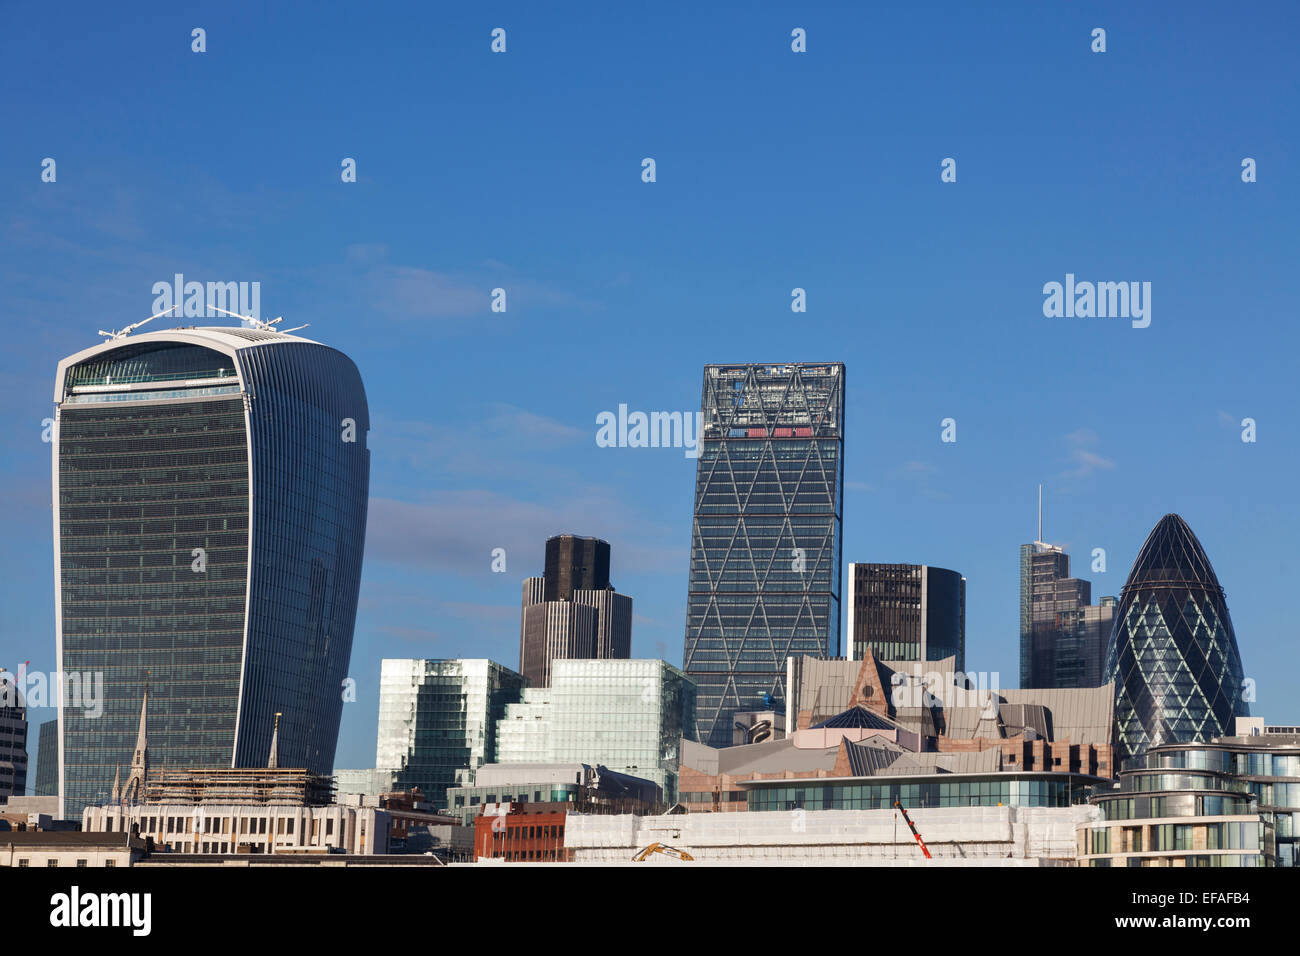 City of London skyline taken from the South Bank, UK. - Stock Image